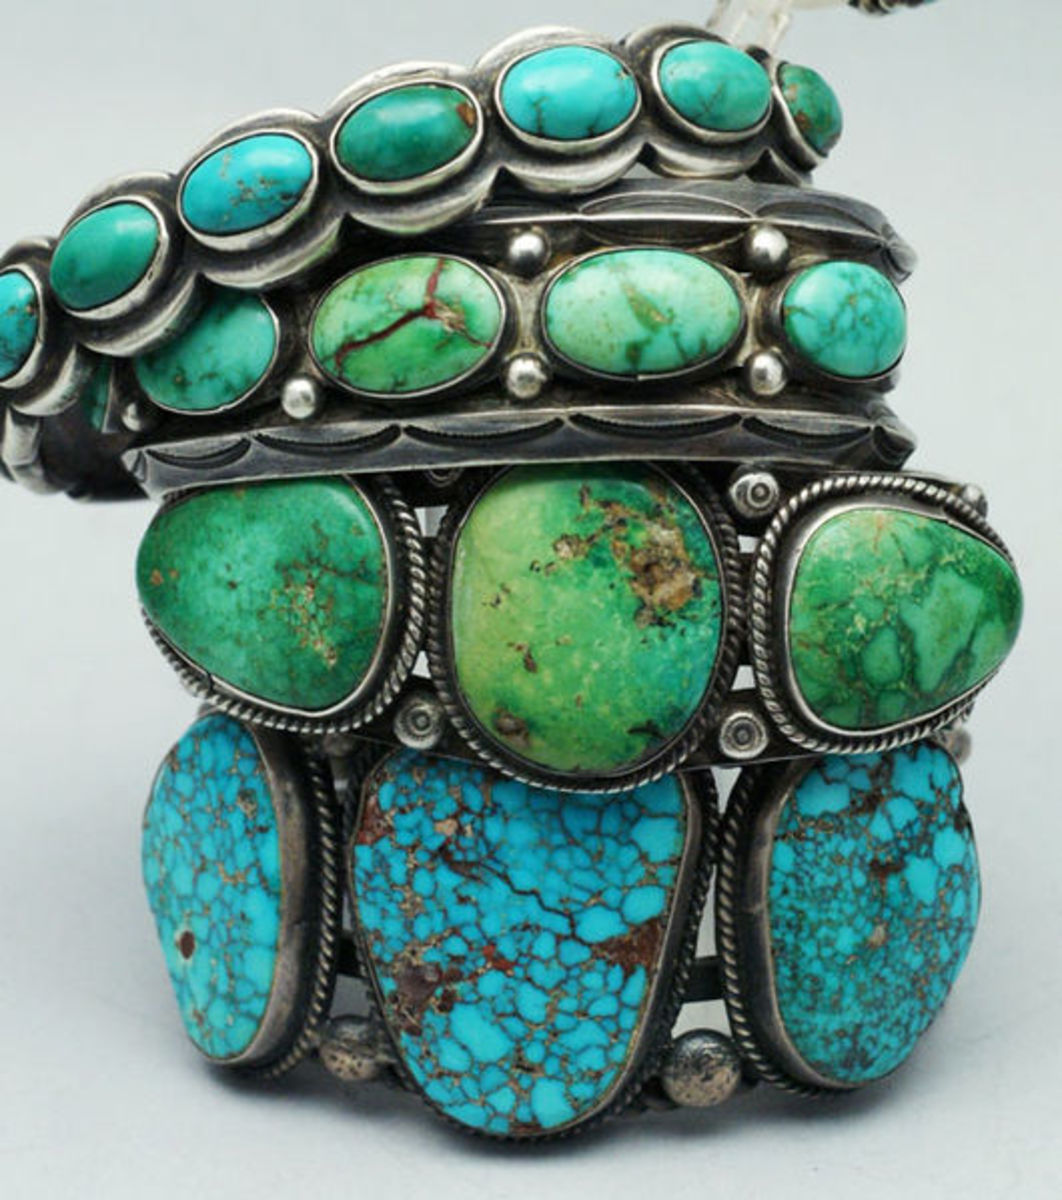 Turquoise Jewelry - made by Native Americans